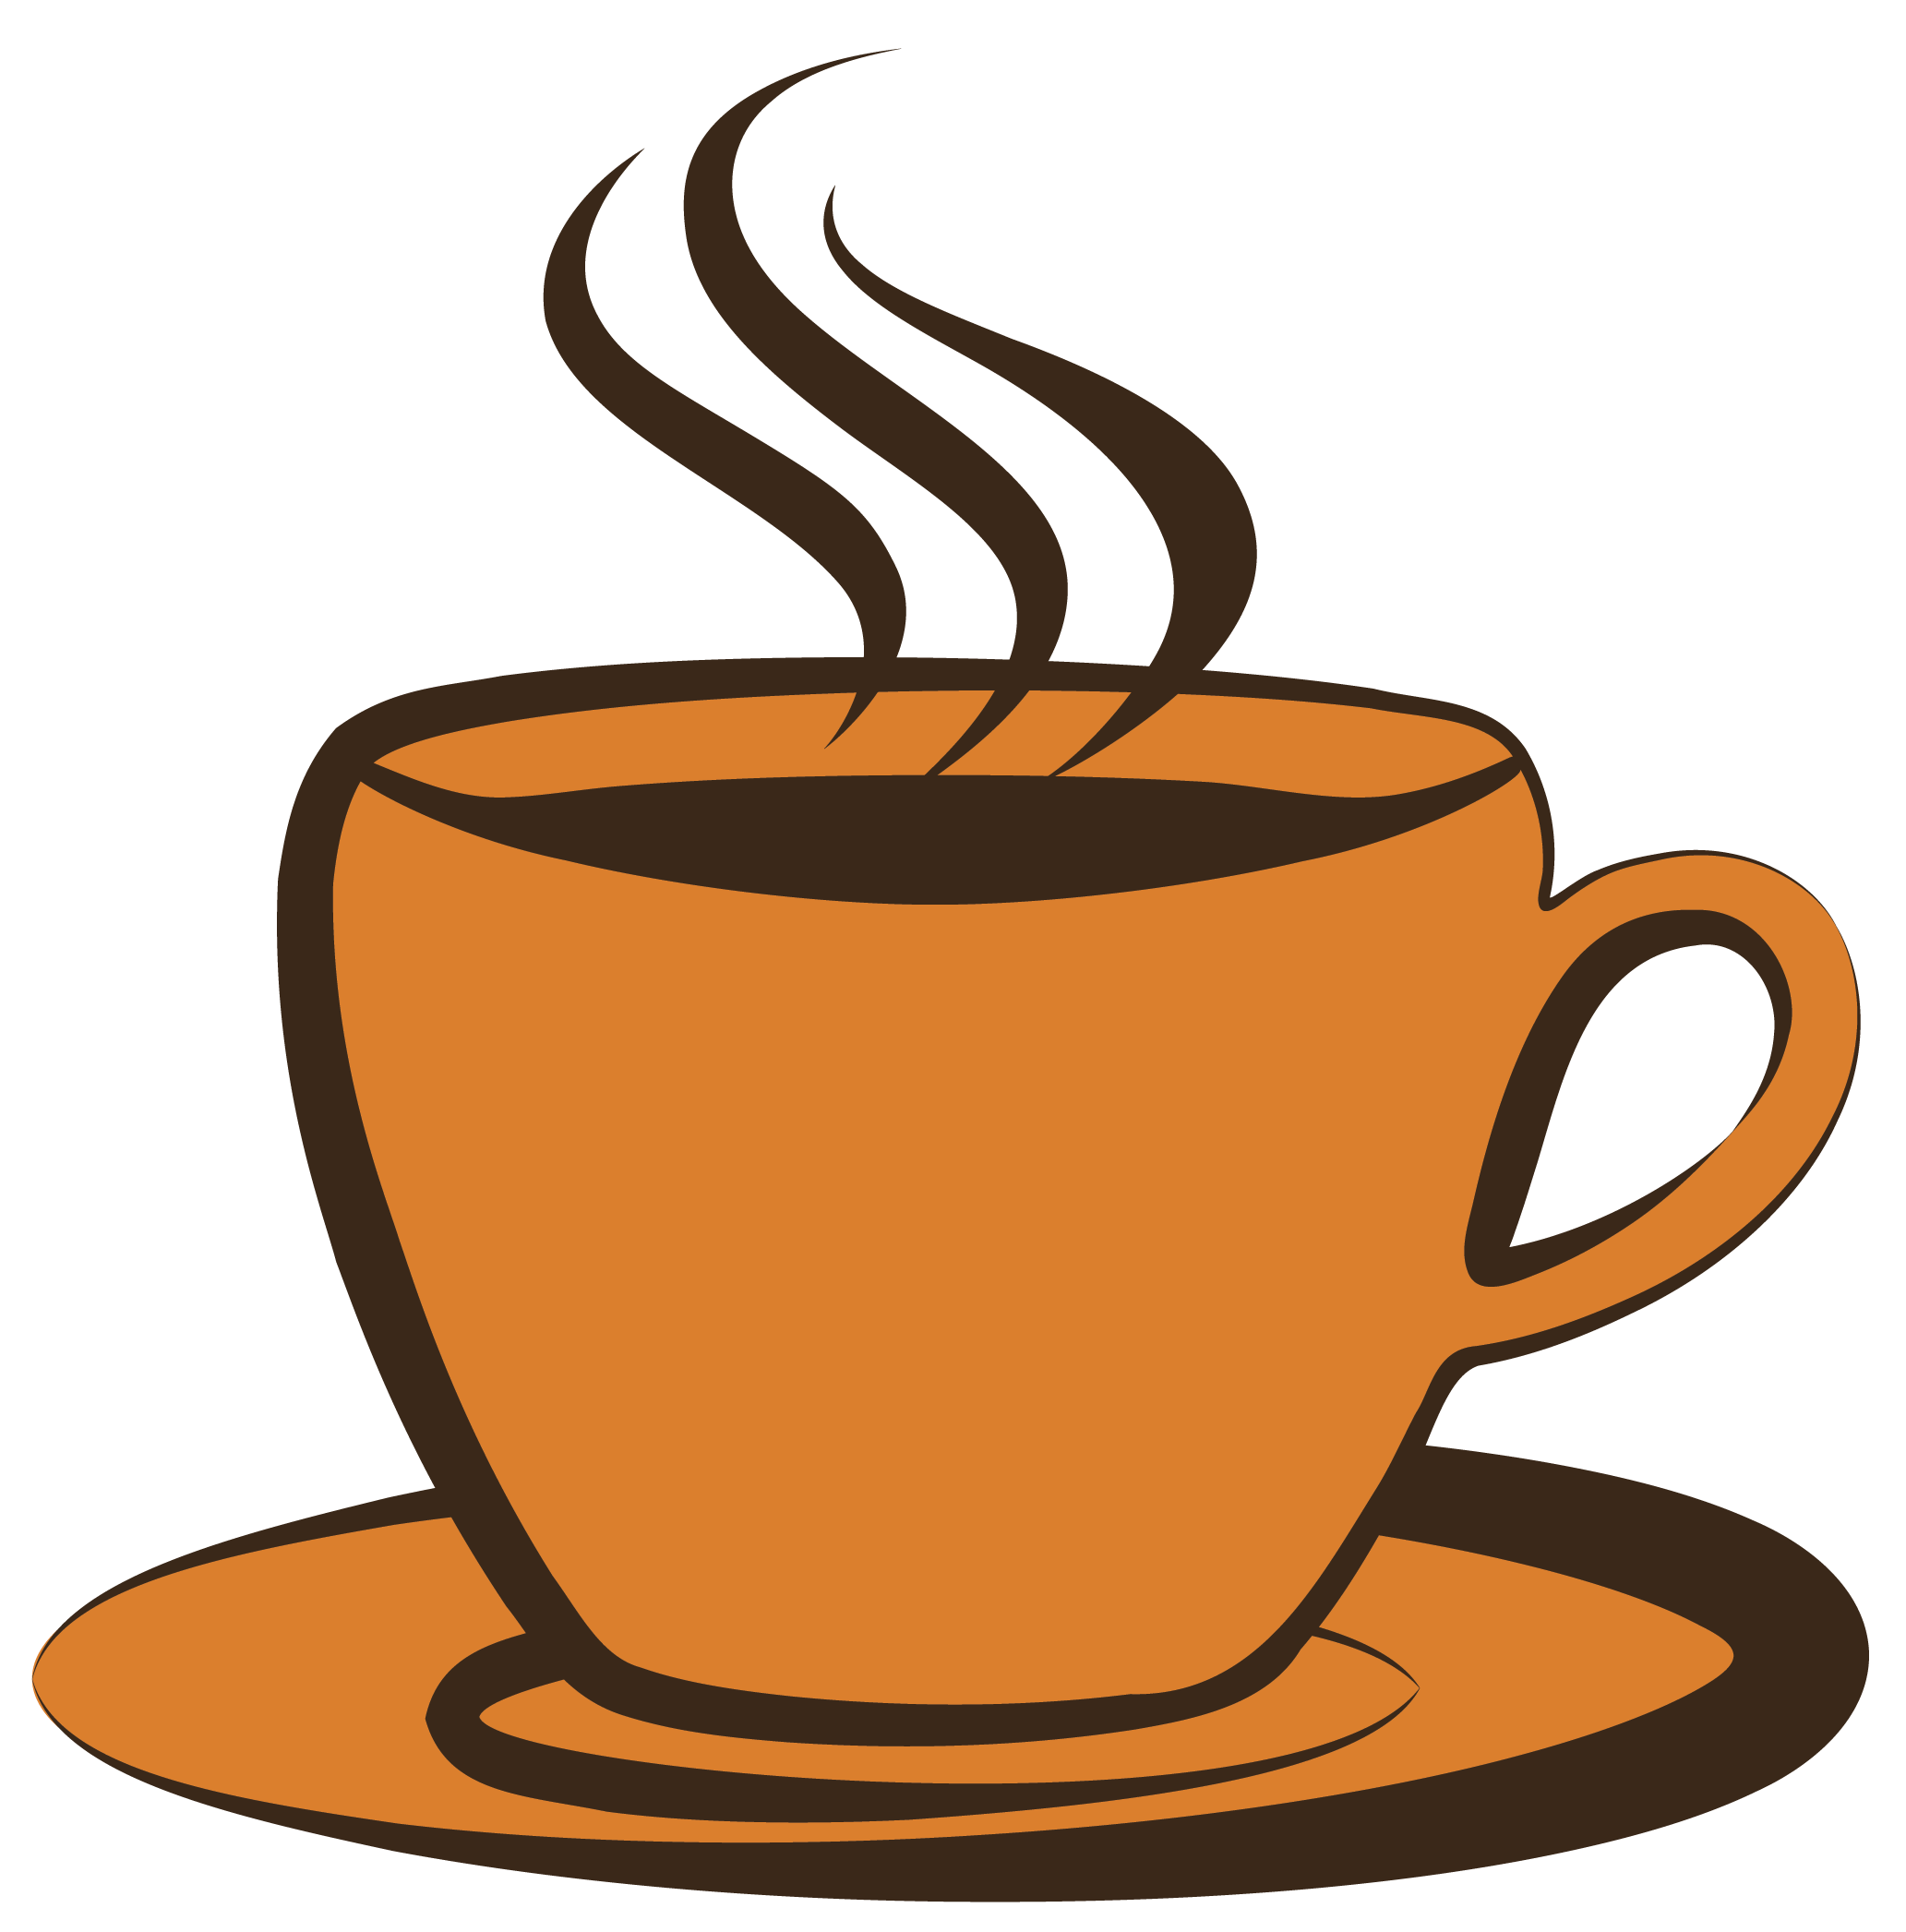 Do you drink coffeewithbill. Clipart coffee brewed coffee